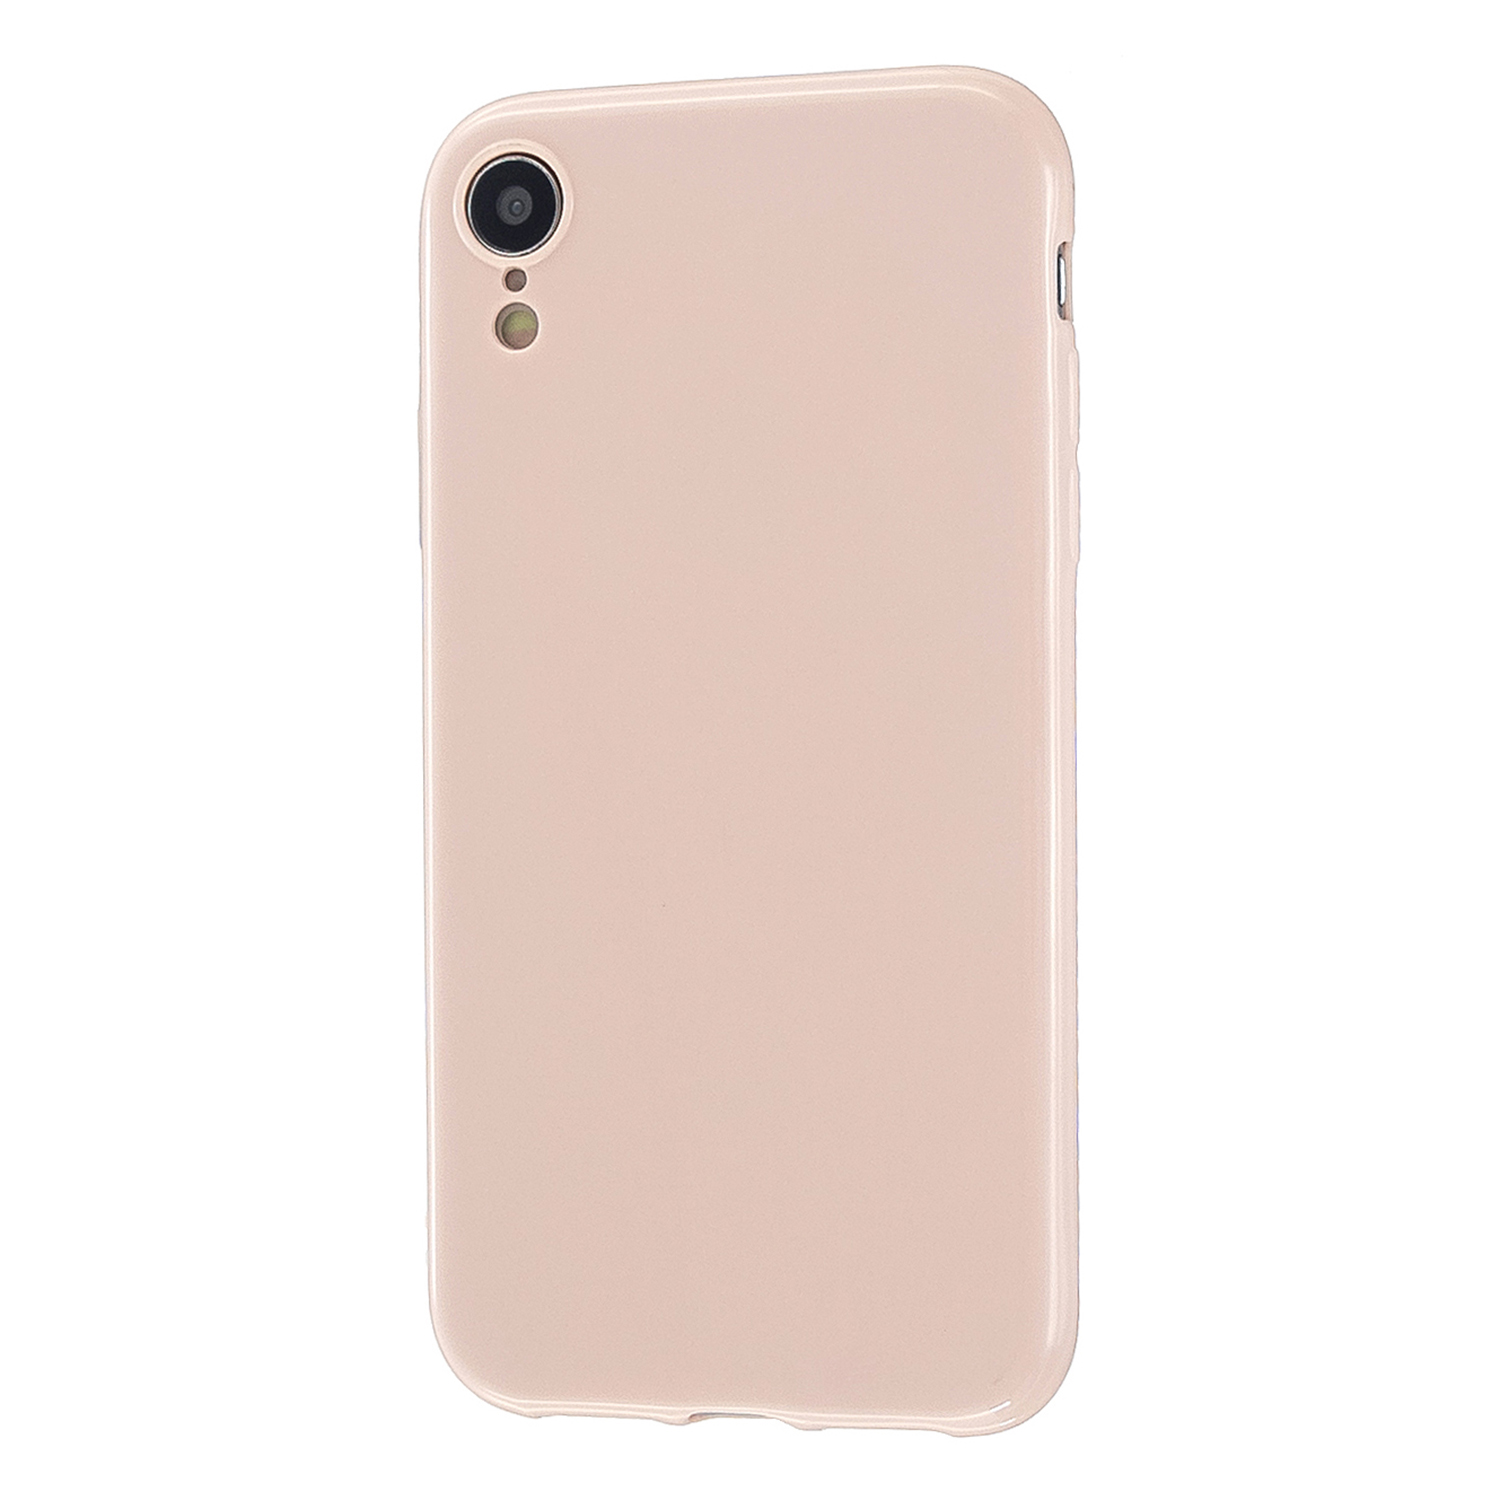 For iPhone X/XS/XS Max/XR  Cellphone Cover Slim Fit Bumper Protective Case Glossy TPU Mobile Phone Shell Sakura pink